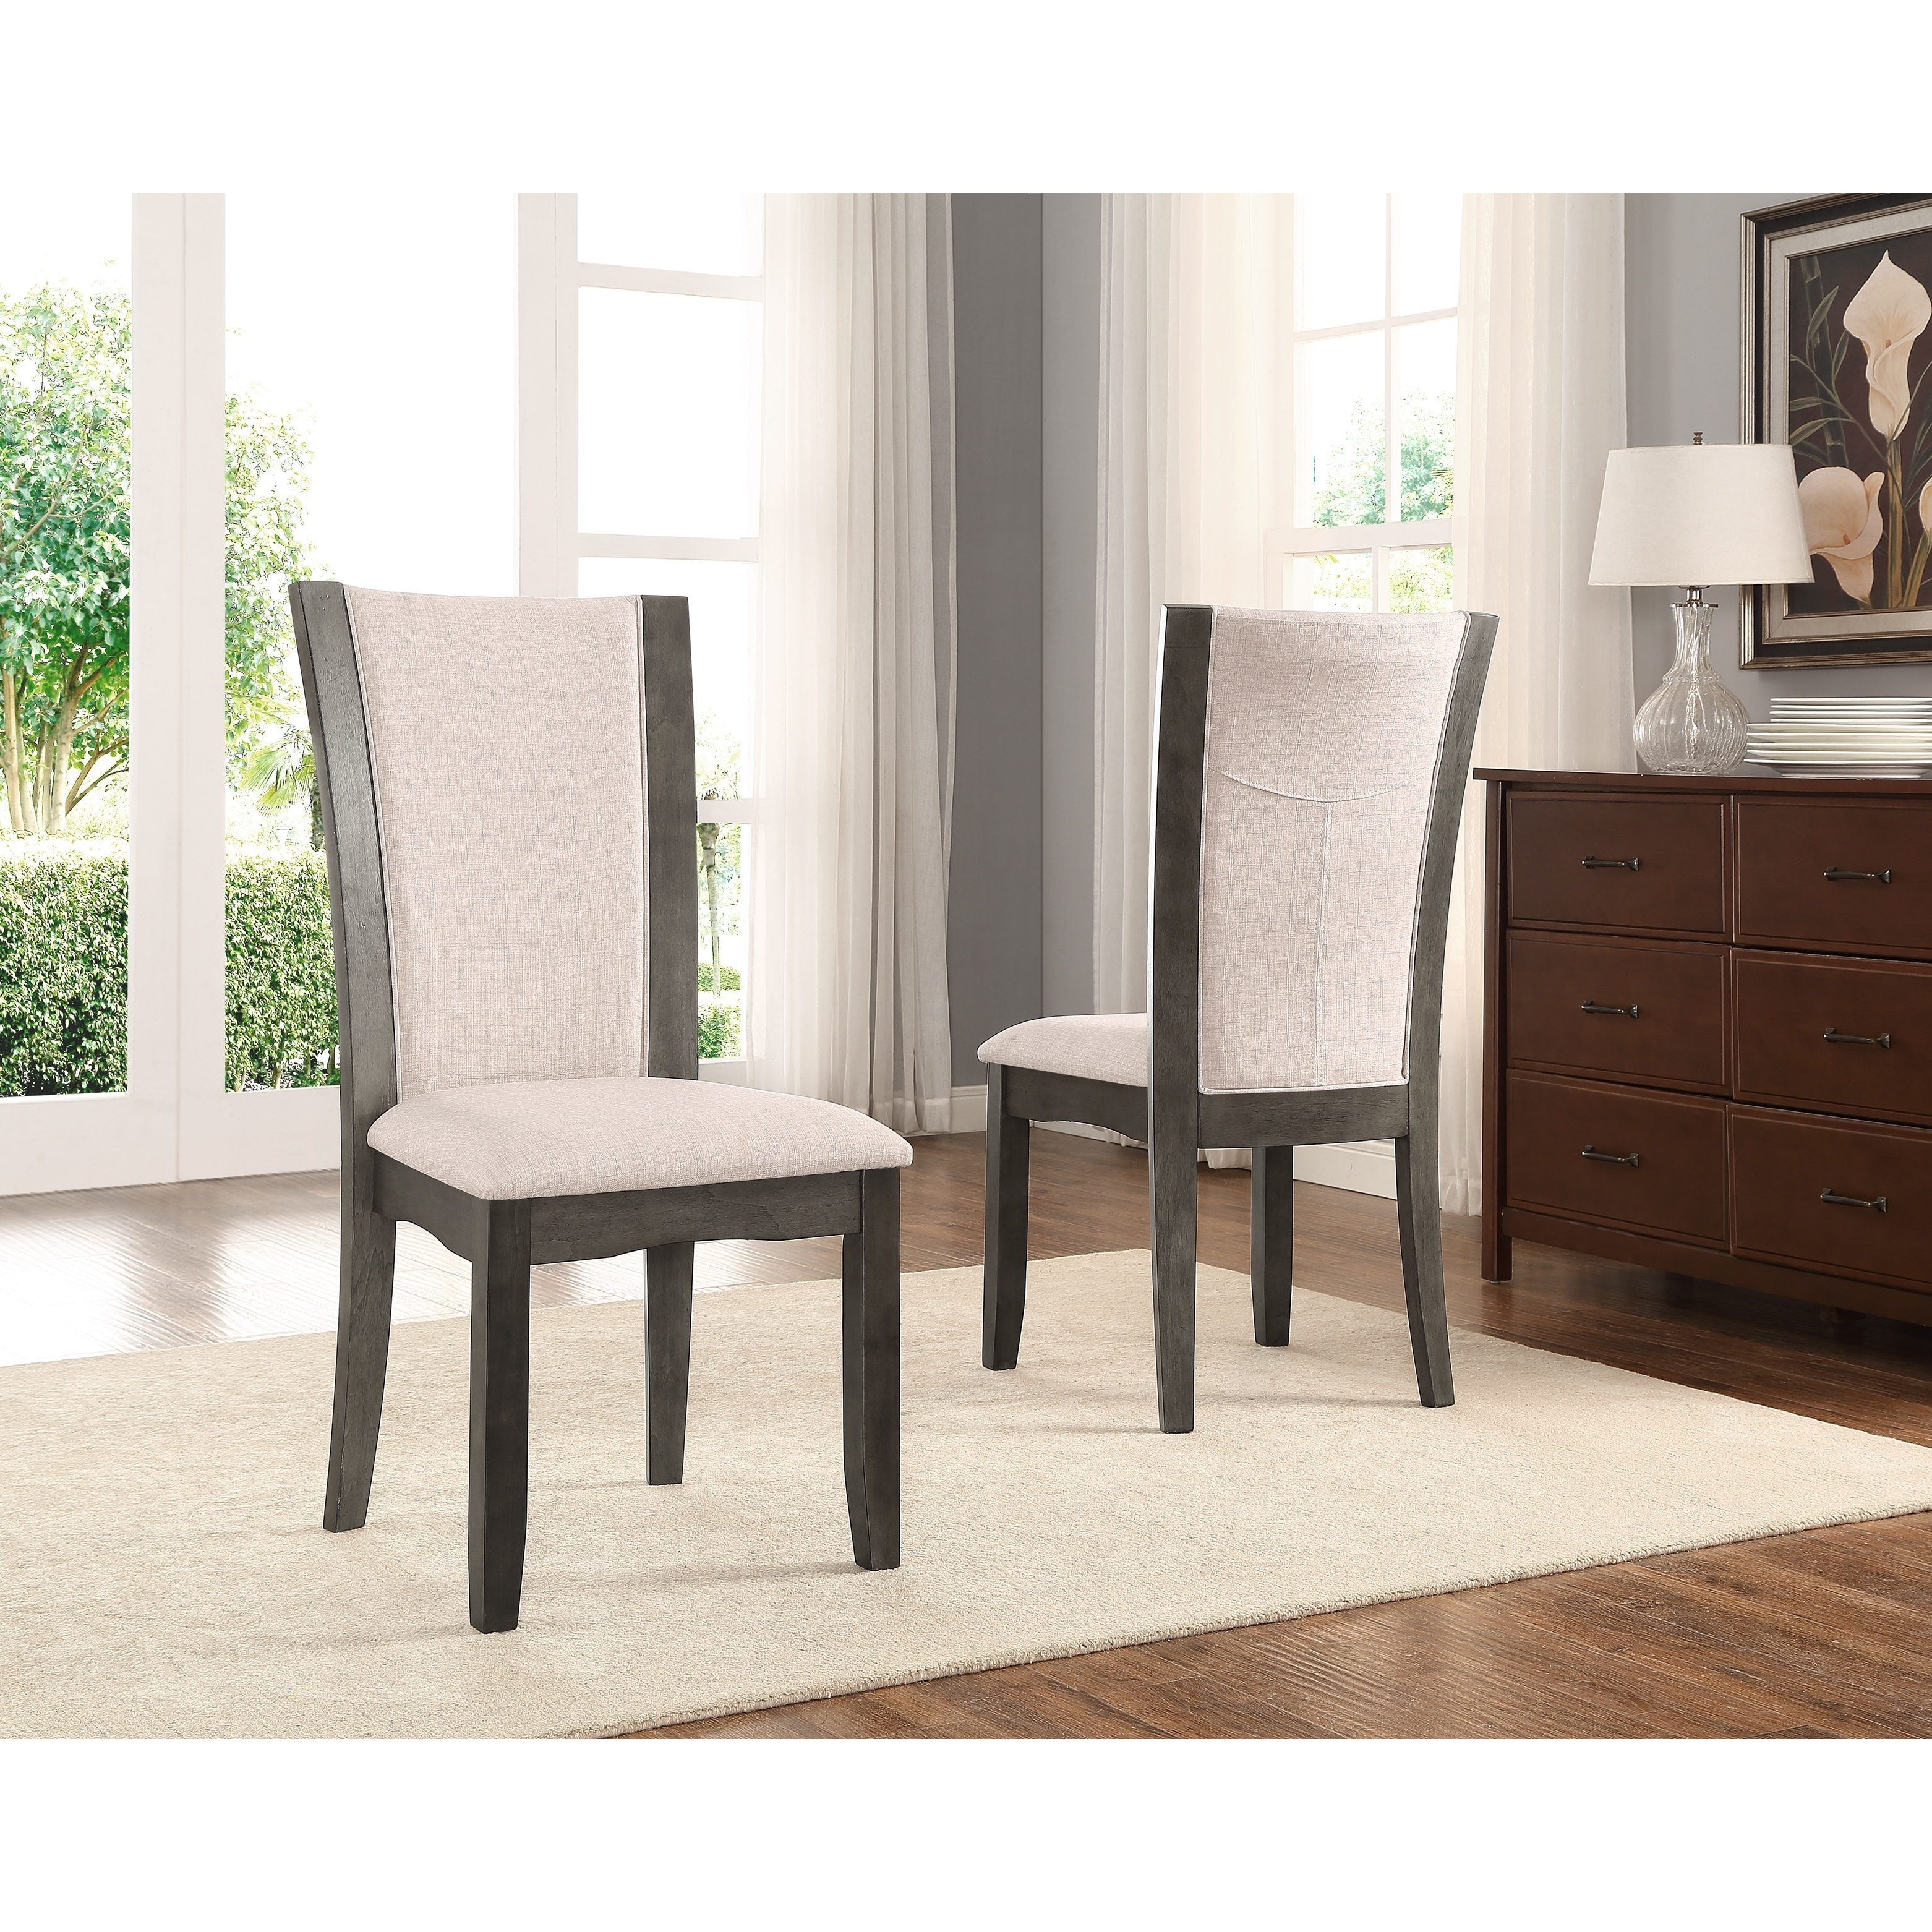 Kecco Grey 5 Piece Glass Top Dining Set, Table With 4 Chairs   Free  Shipping Today   Overstock.com   23004165